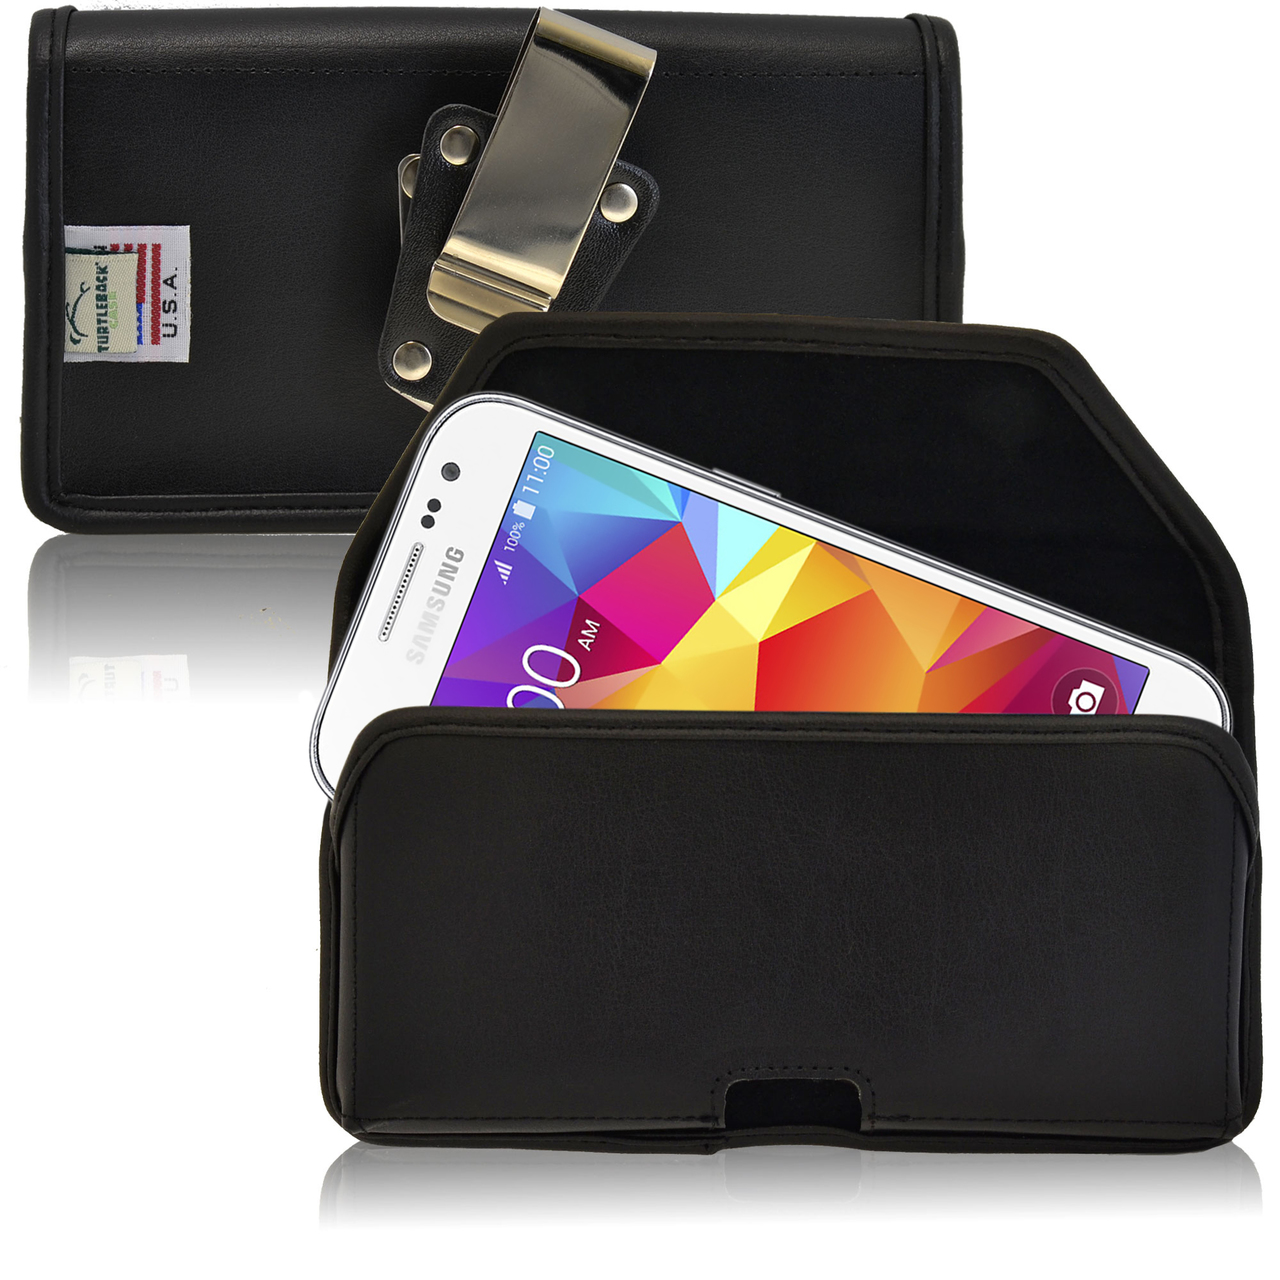 Samsung Galaxy Core Prime Pouch, Turtleback [Black] Horizontal Real Leather Holster Pouch Case w/ Rotating Metal Belt Clip - Made in the USA!